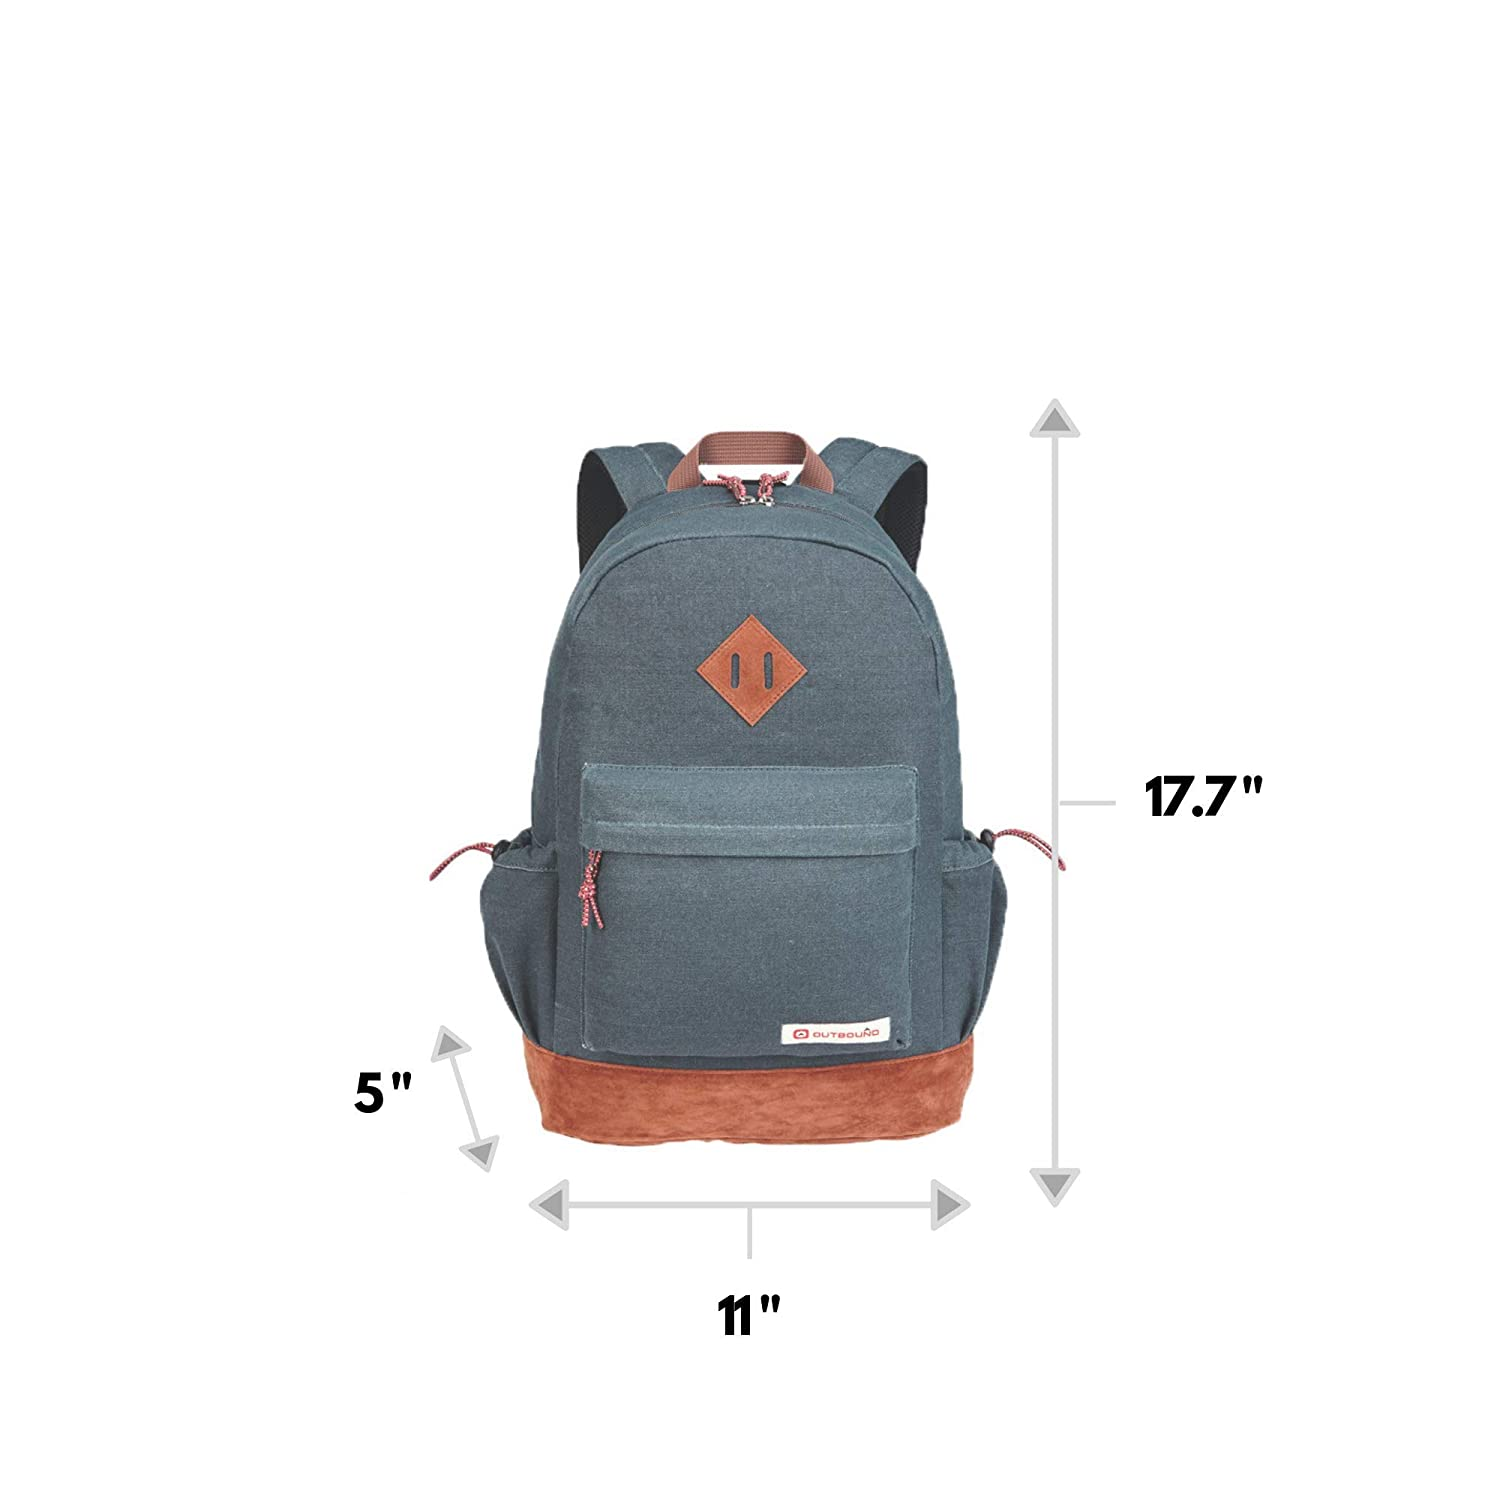 Perfect for Kids School Backpack for Boys and Girls Blue Students or Everyday Use Outbound Canvas Backpack 17.7 Inch